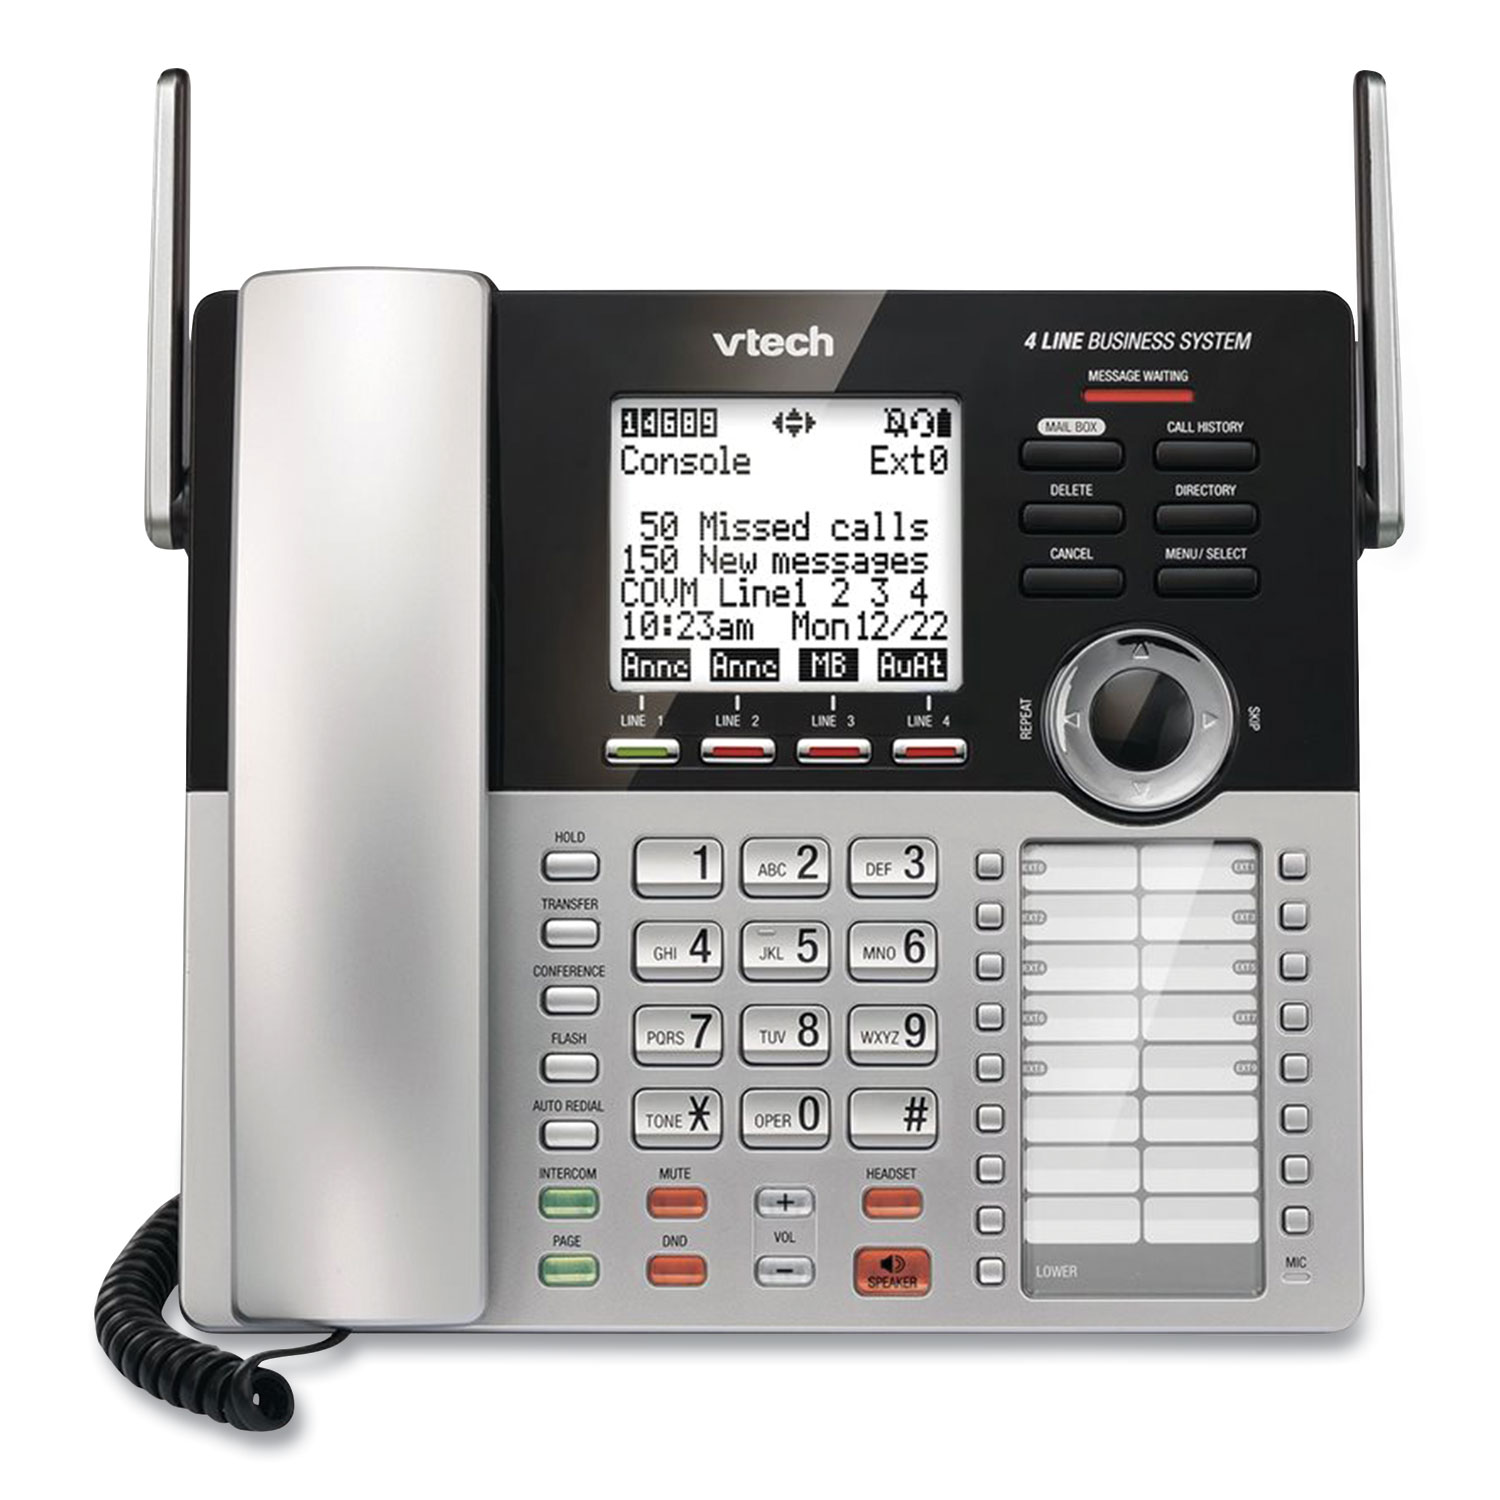 Vtech® CM18445 Four-Line Business System Cordless Phone, Silver/Black